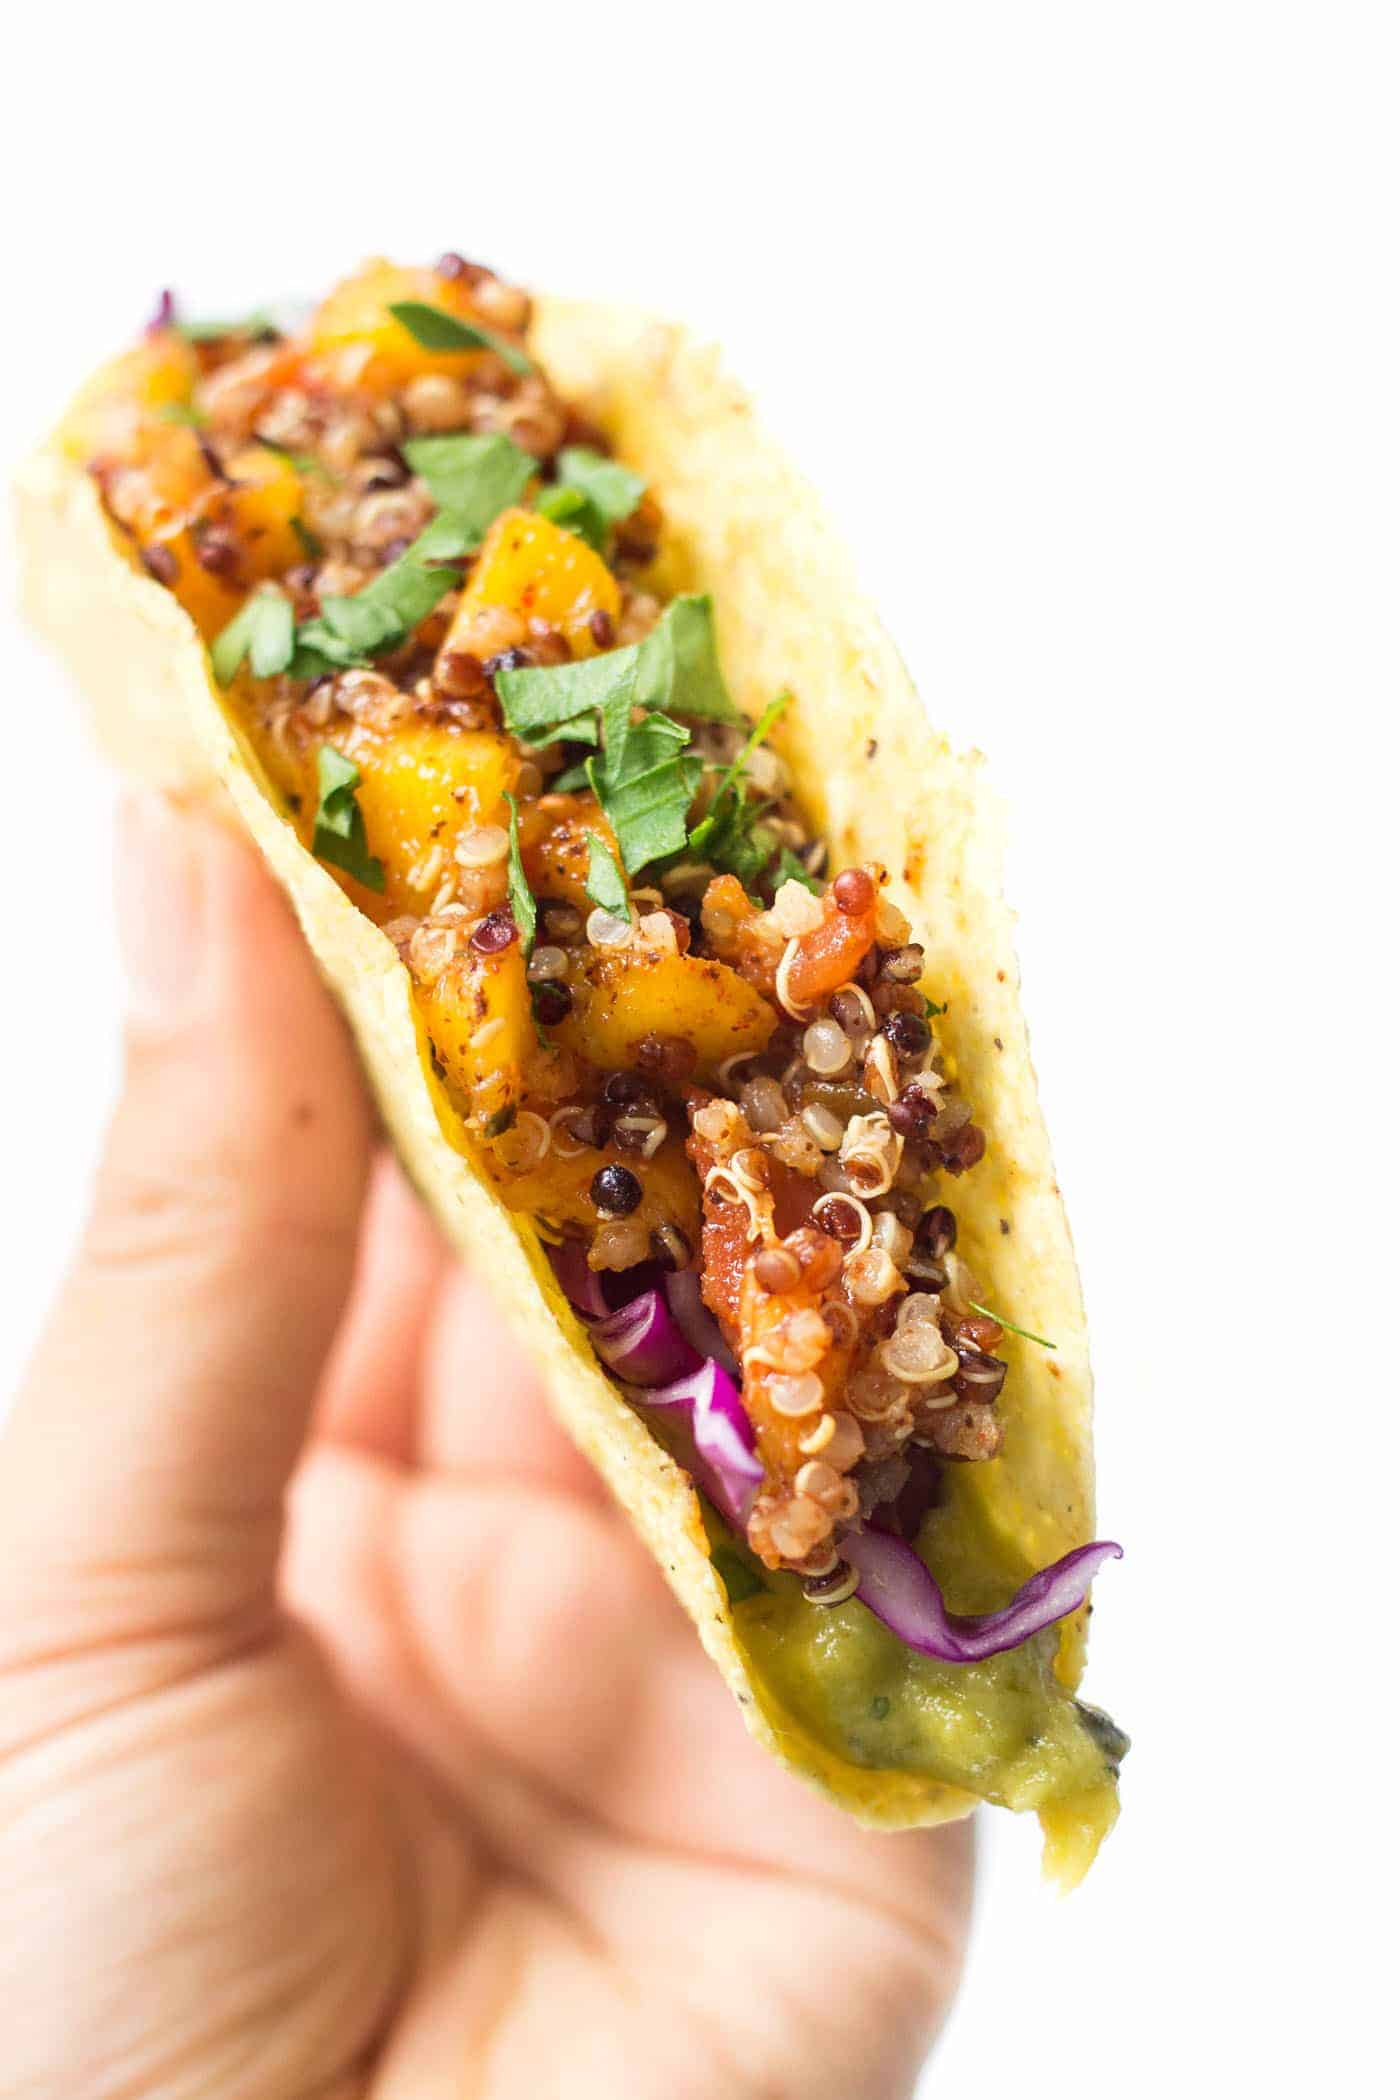 Mango-Lime Quinoa Tacos -- with a spicy meatless filling, creamy guacamole and crunchy red cabbage! So simple and SO HEALTHY! [vegan]